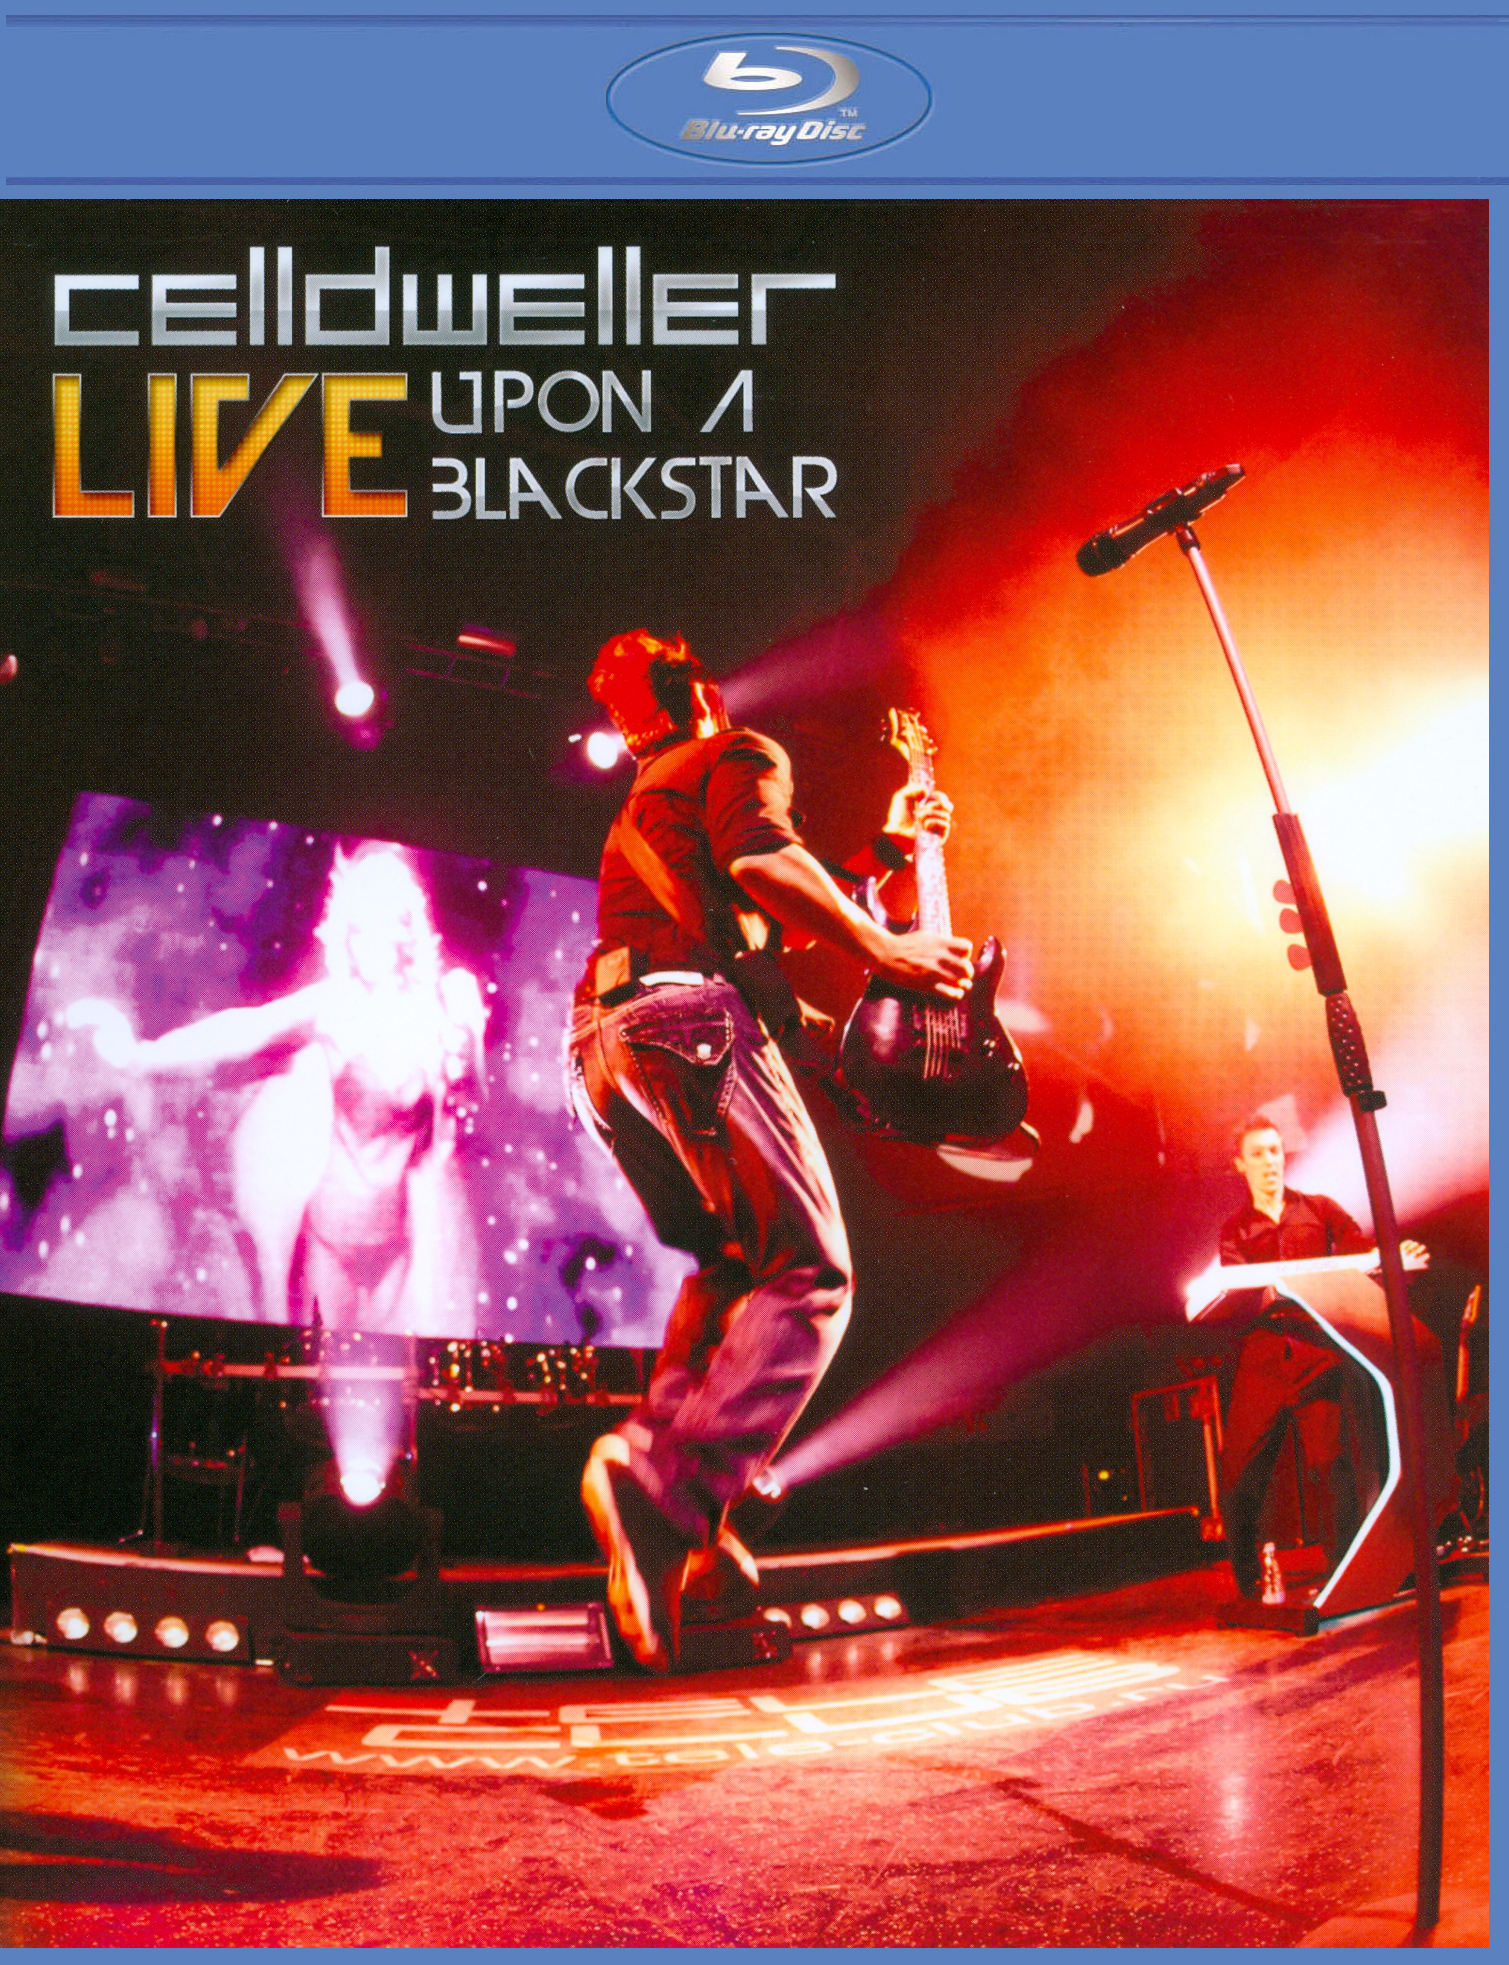 Celldweller: Live Upon a Blackstar